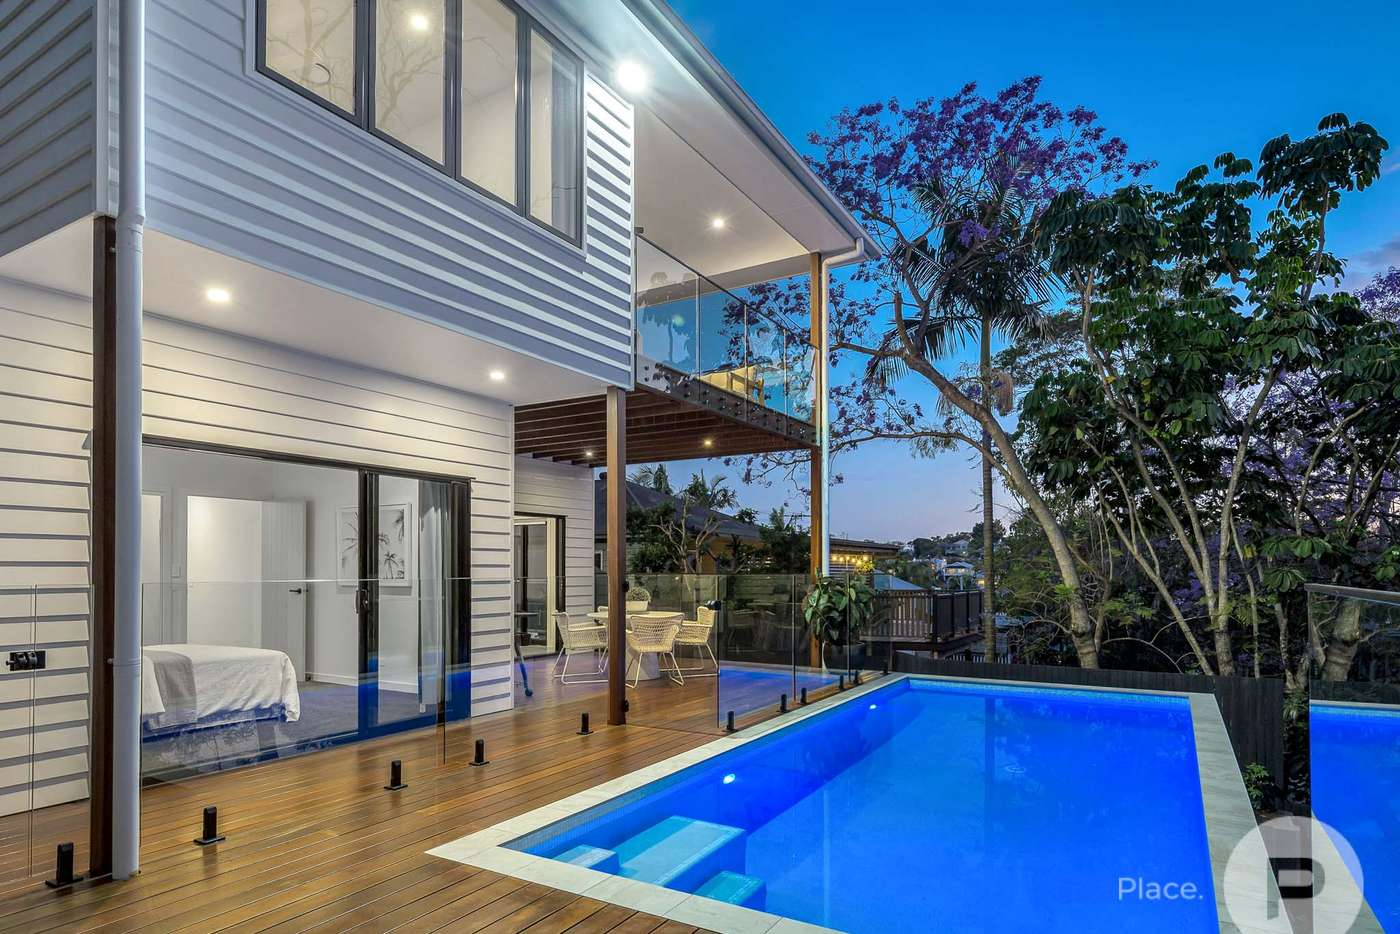 Main view of Homely house listing, 26 Eton Street, Toowong QLD 4066